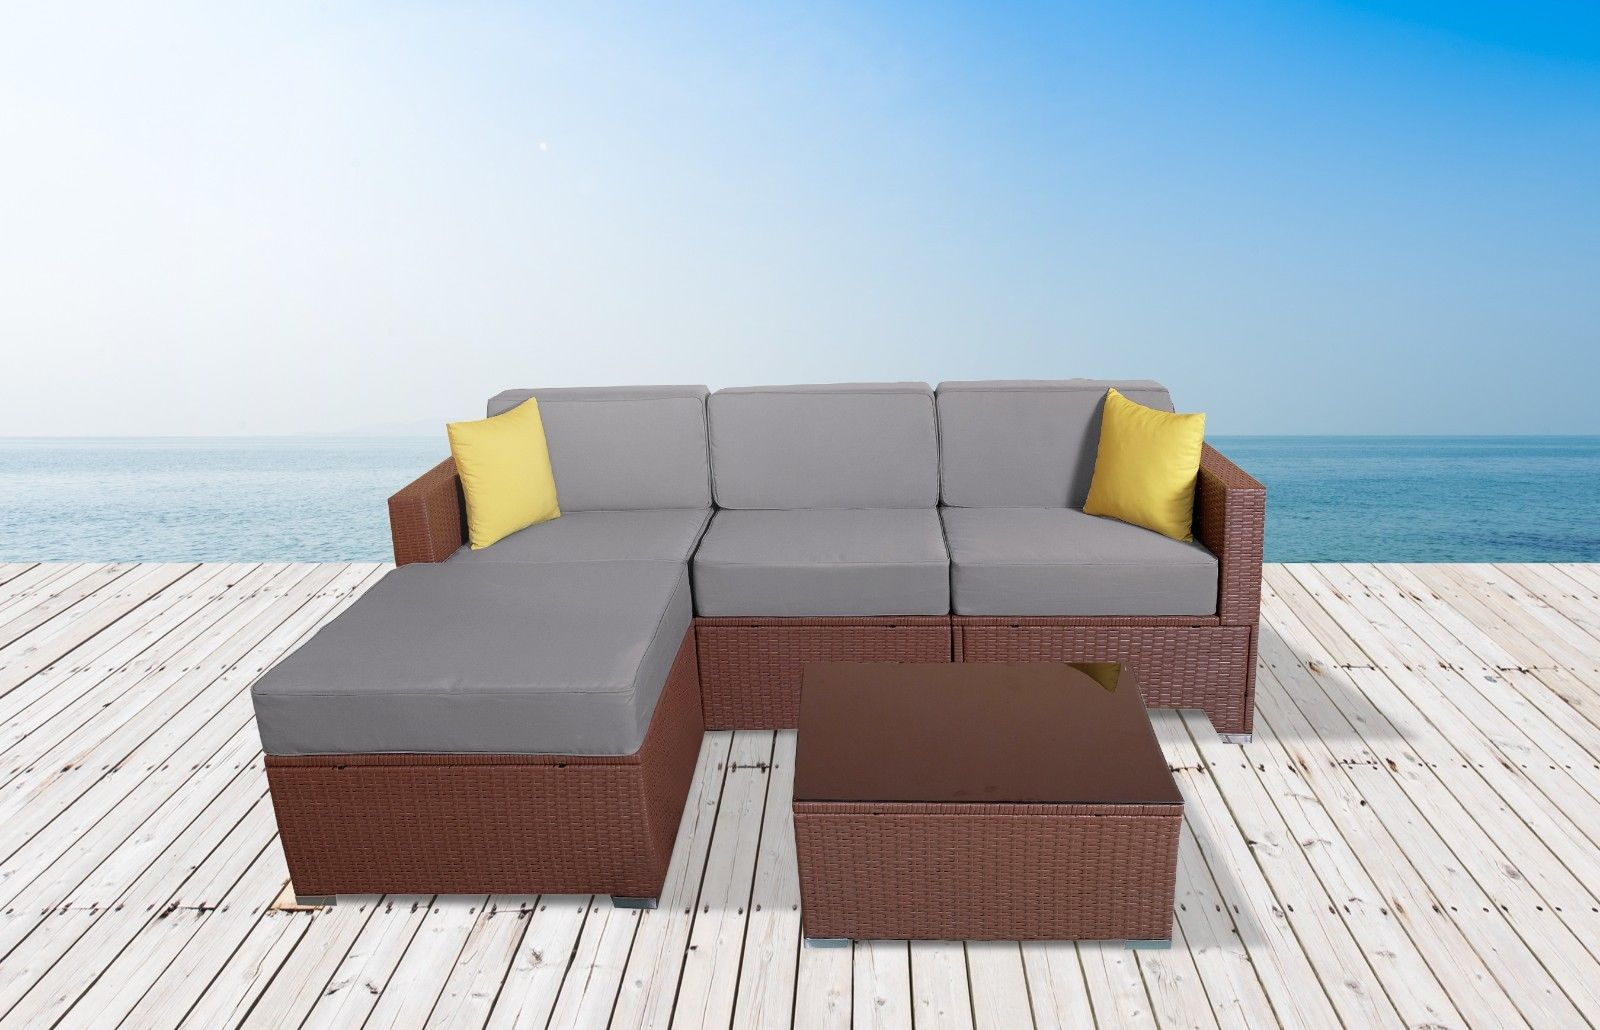 mcombo: Mcombo 5PC Outdoor Rattan Sofa Wicker Chair Patio Furniture ...